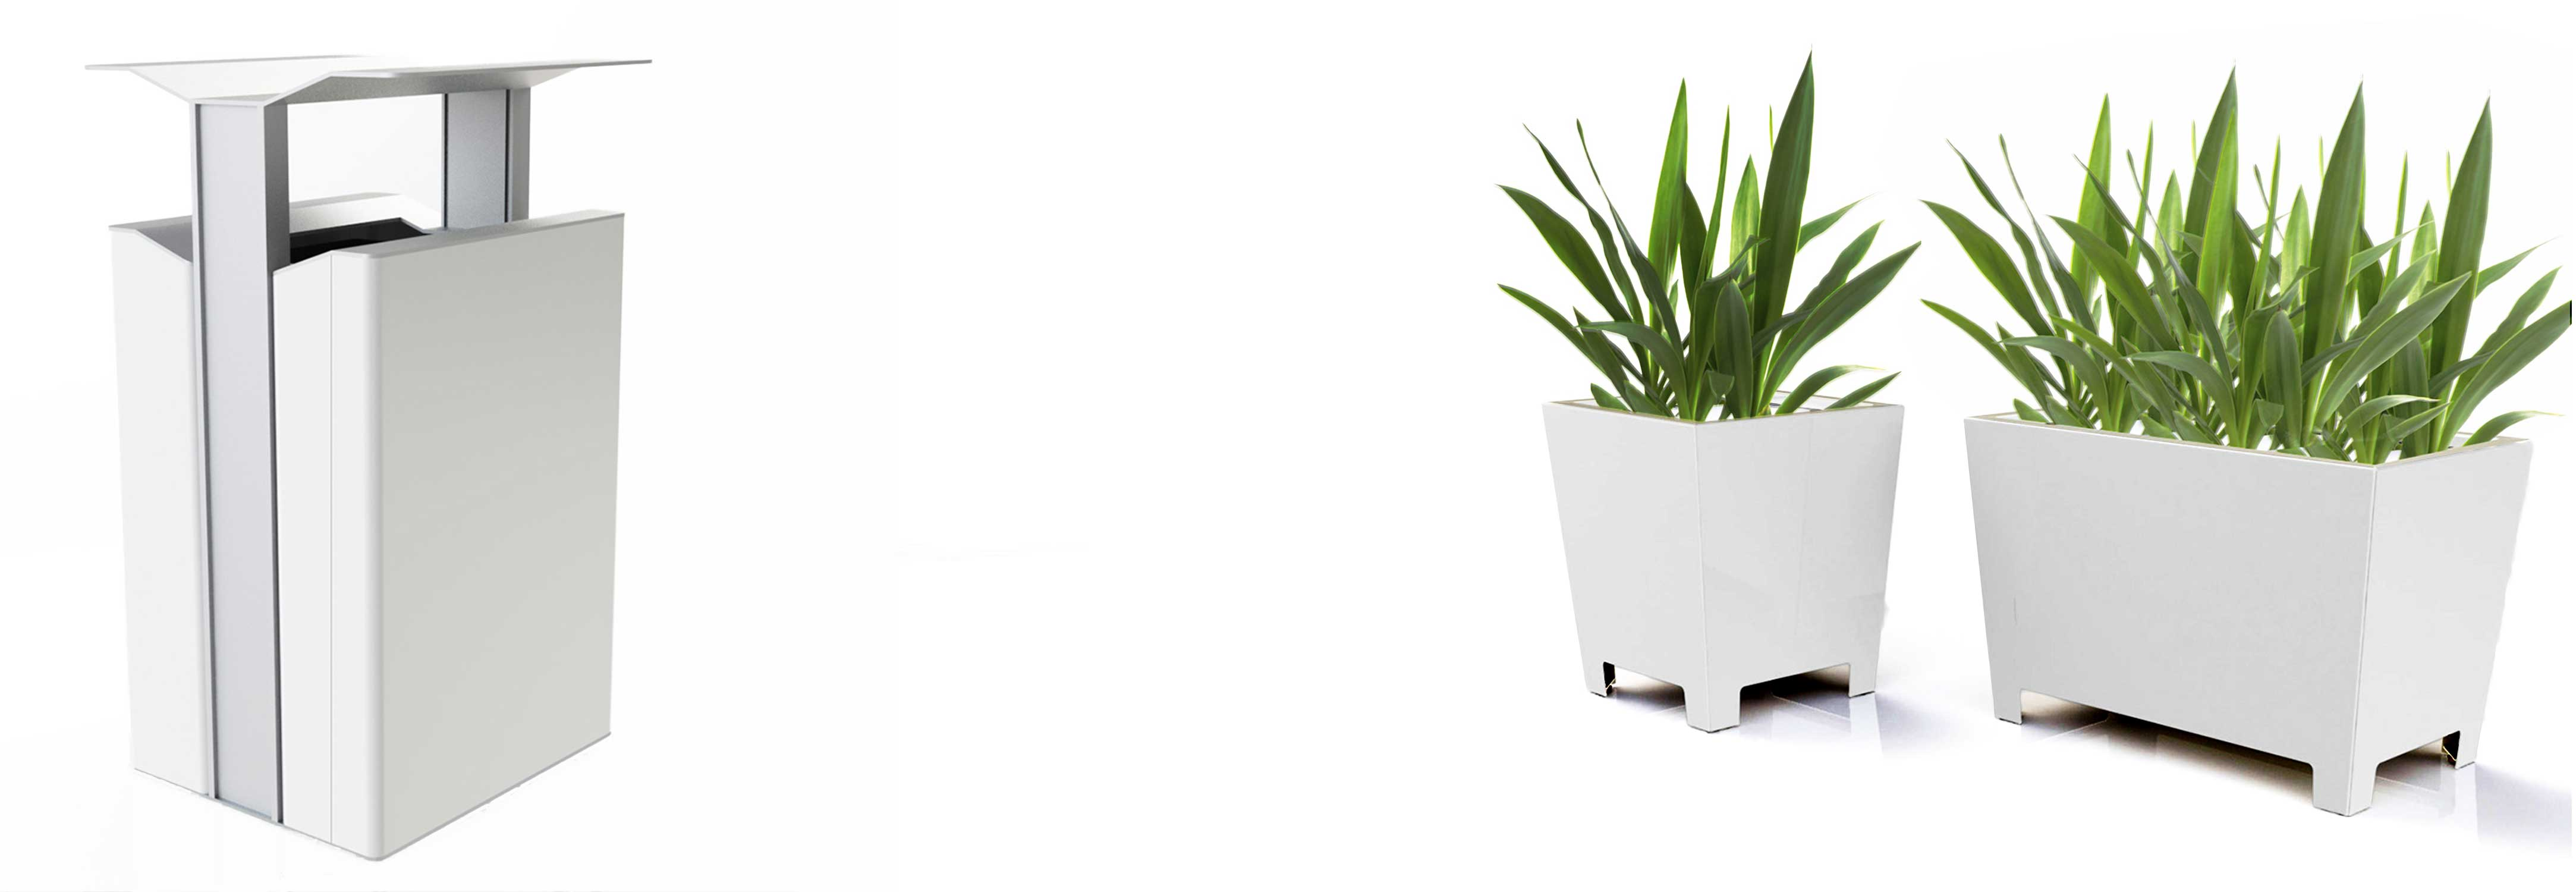 Outdoor-Planters-and-Receptacle